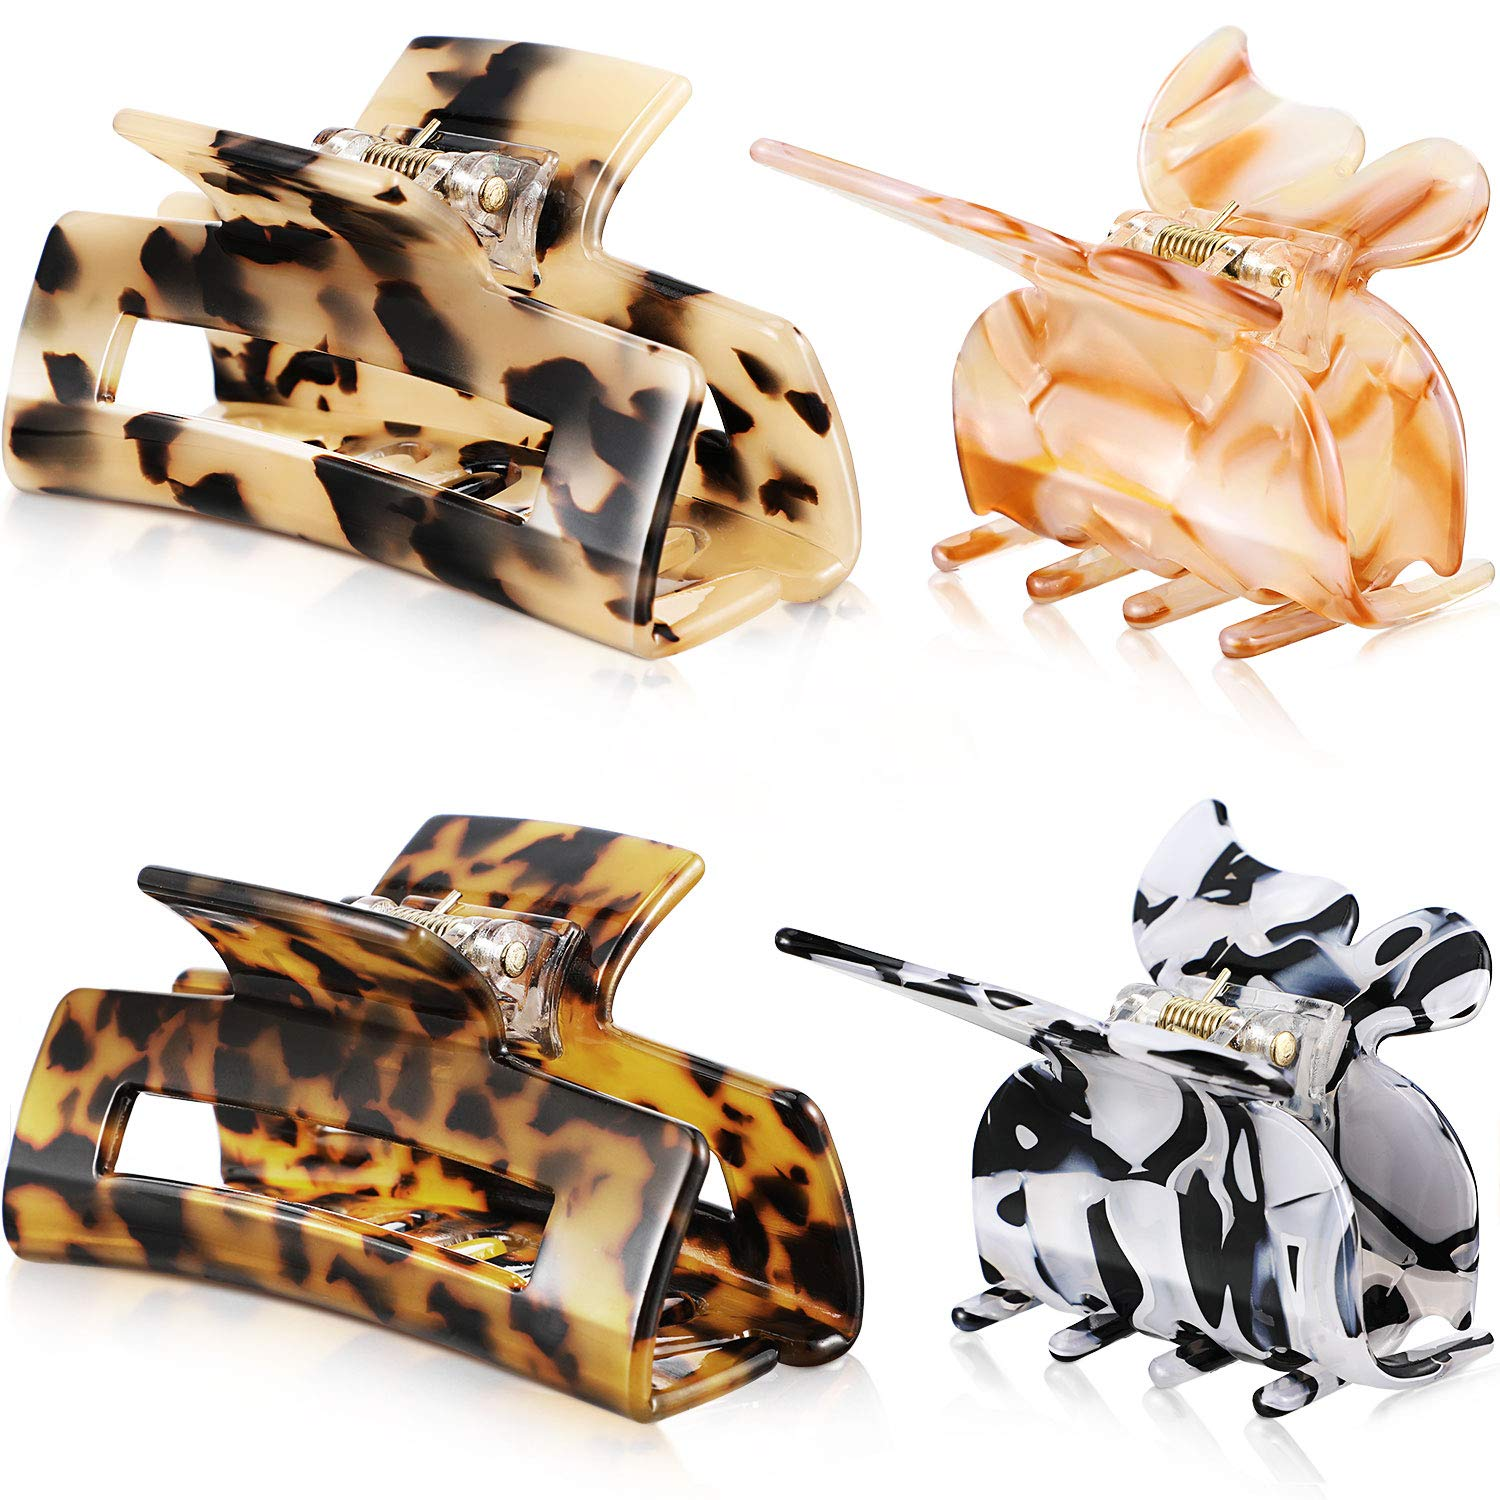 4 Pieces French Design Large Hair Claw Clips Cellulose Acetate Hair Clips Tortoise Barrettes Celluloid Leopard Print Large Hair Accessories for Women Girls (Retro Pattern Series)